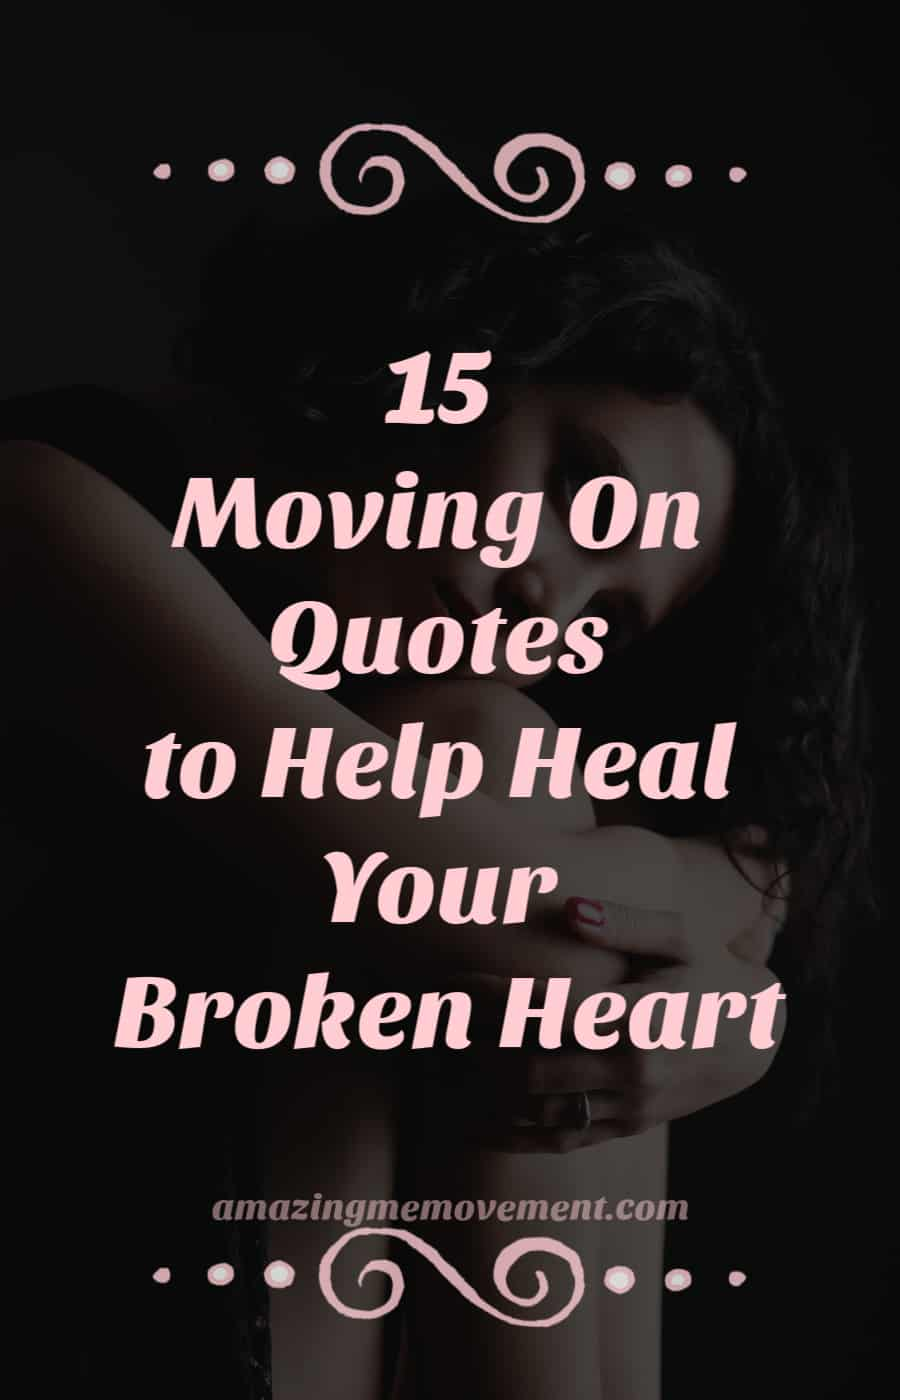 15 moving on quotes to heal your broken heart